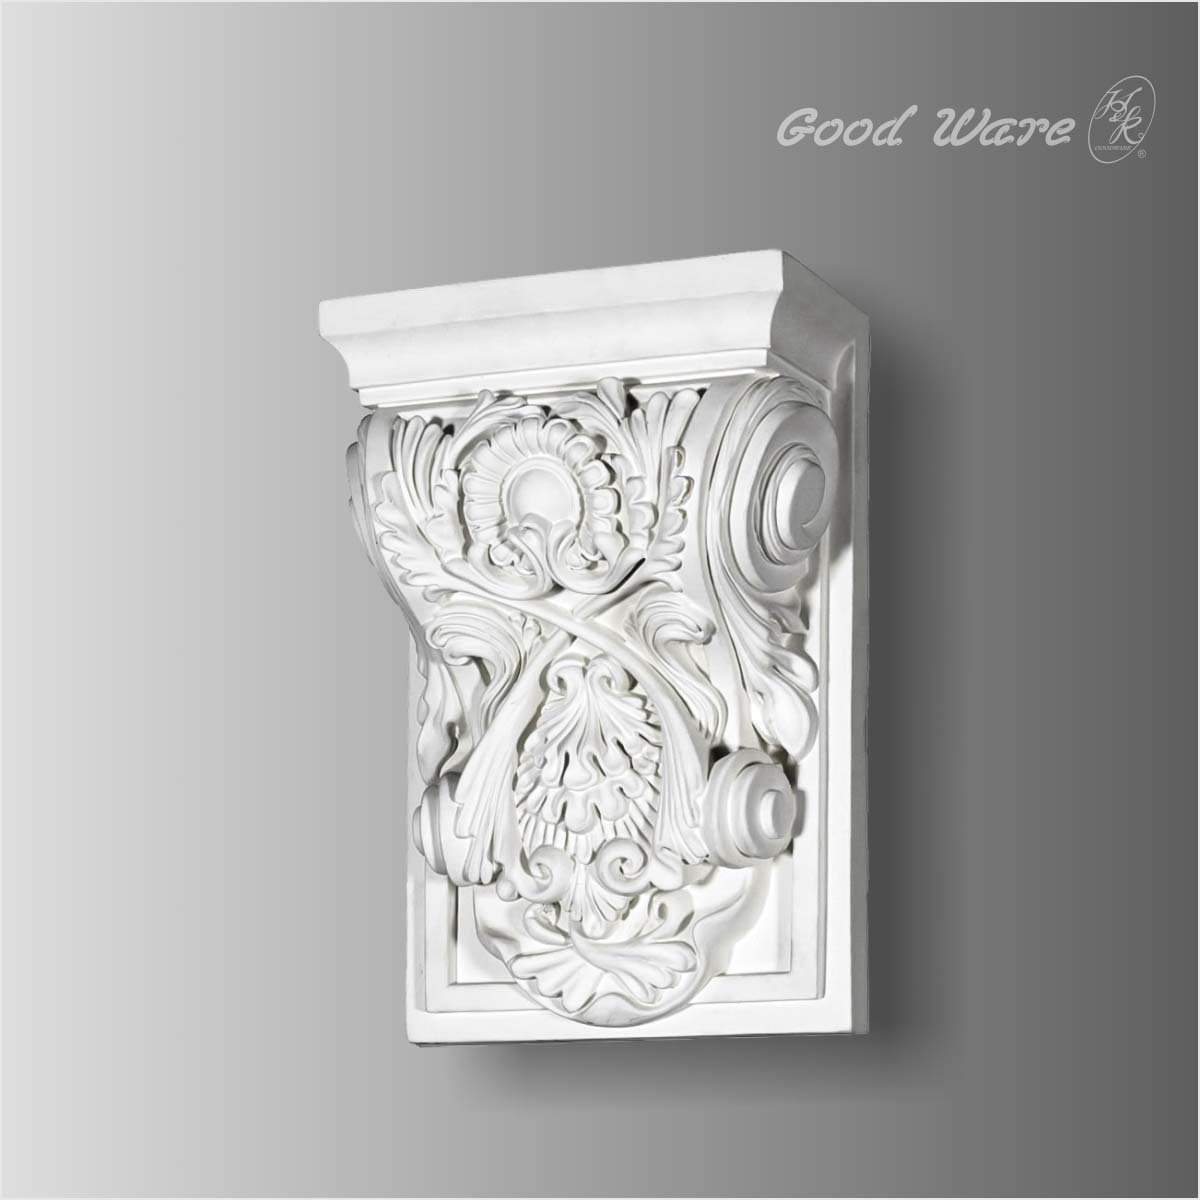 Polyurethane floral decorative brackets